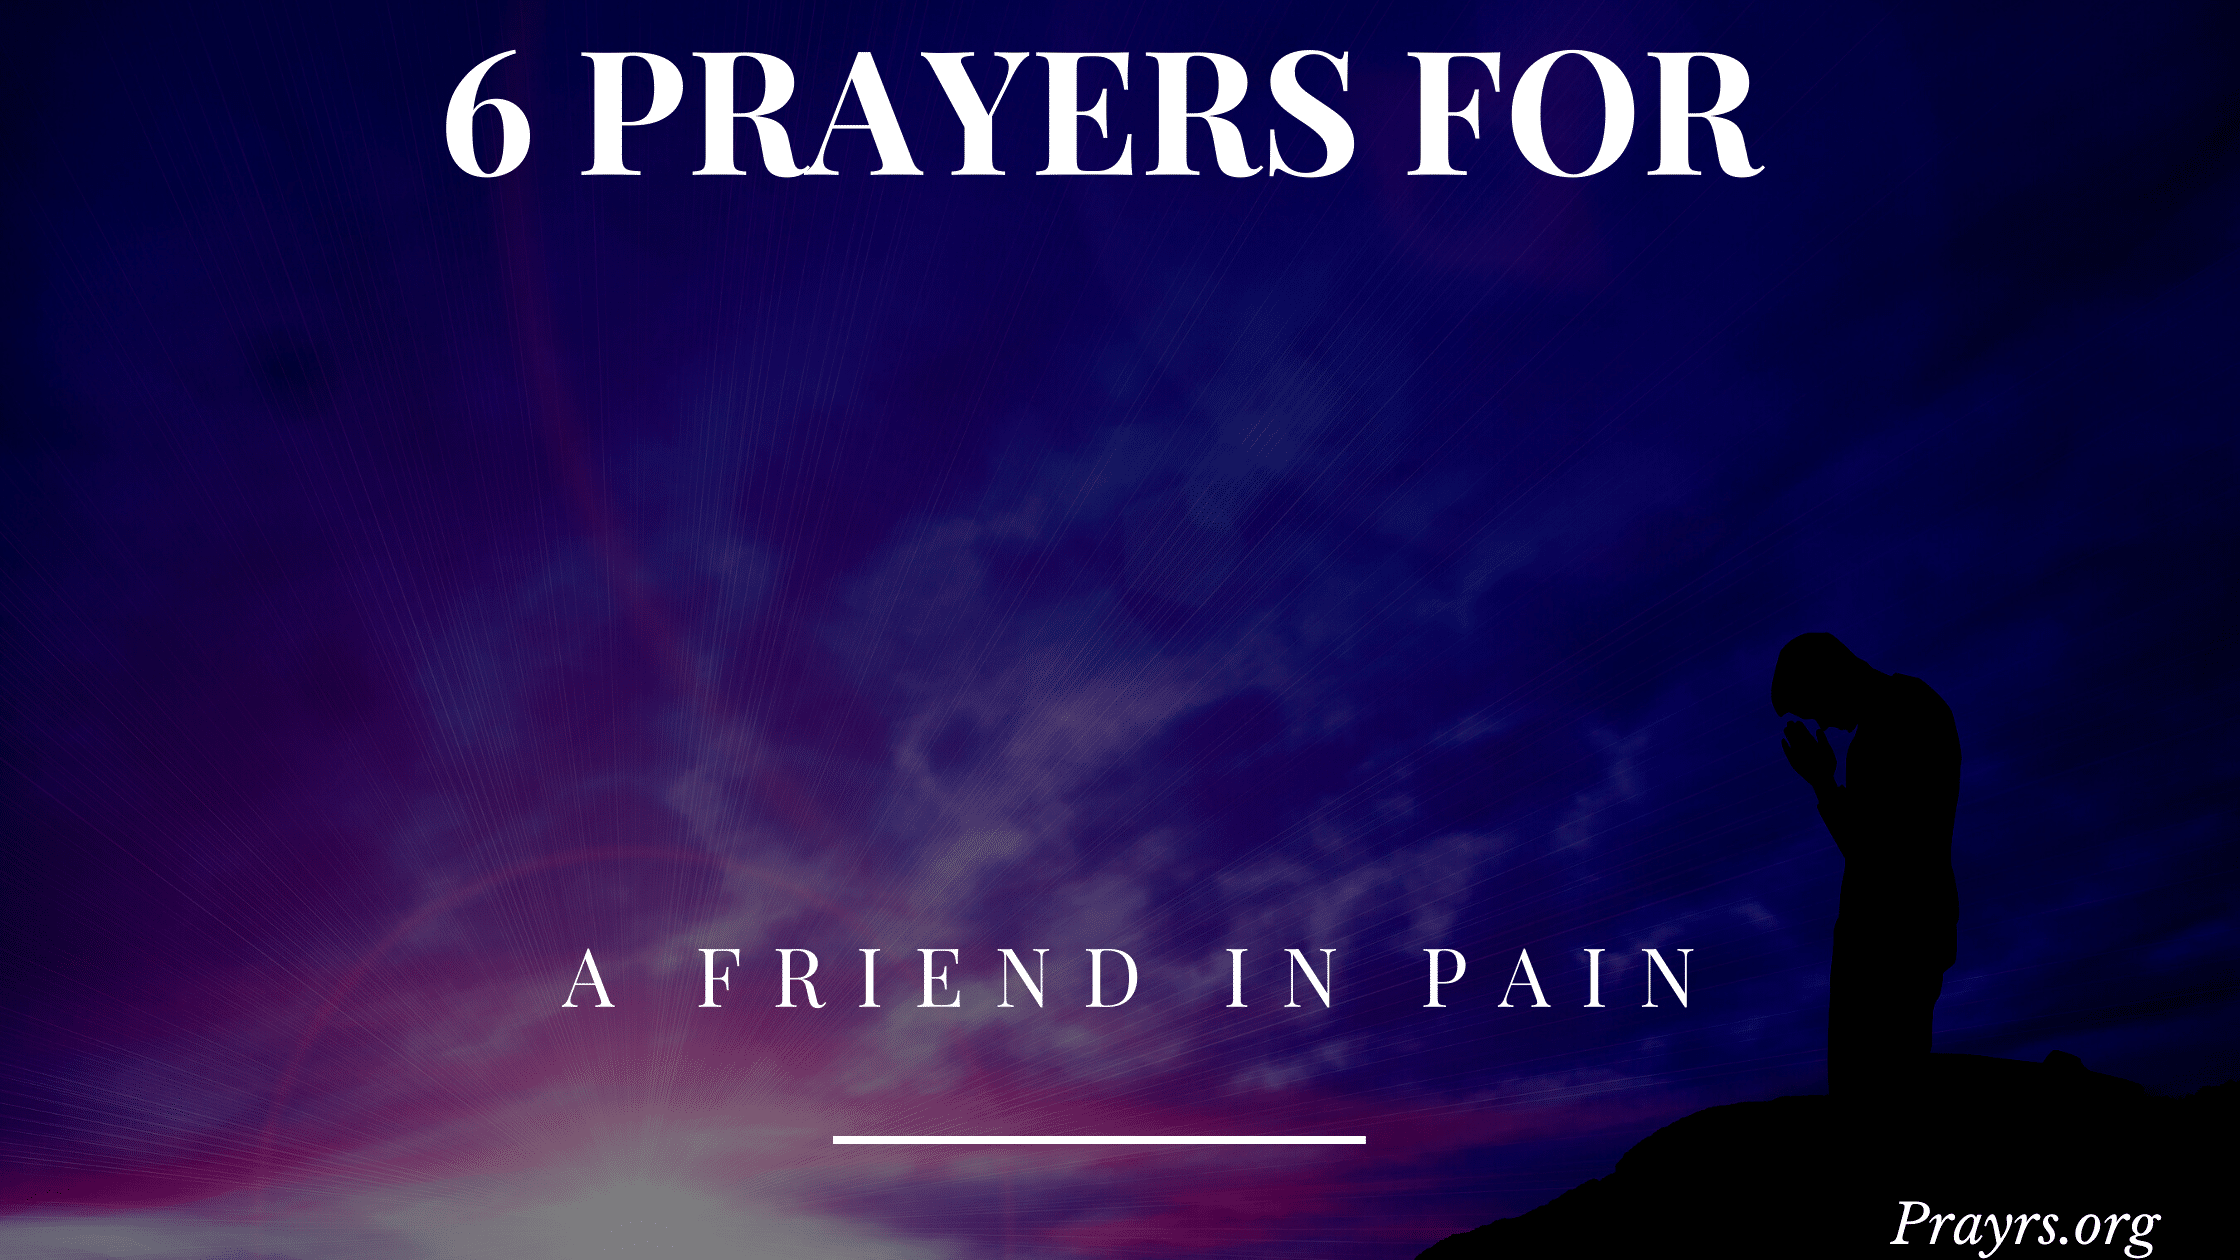 Prayers for a Friend in Pain